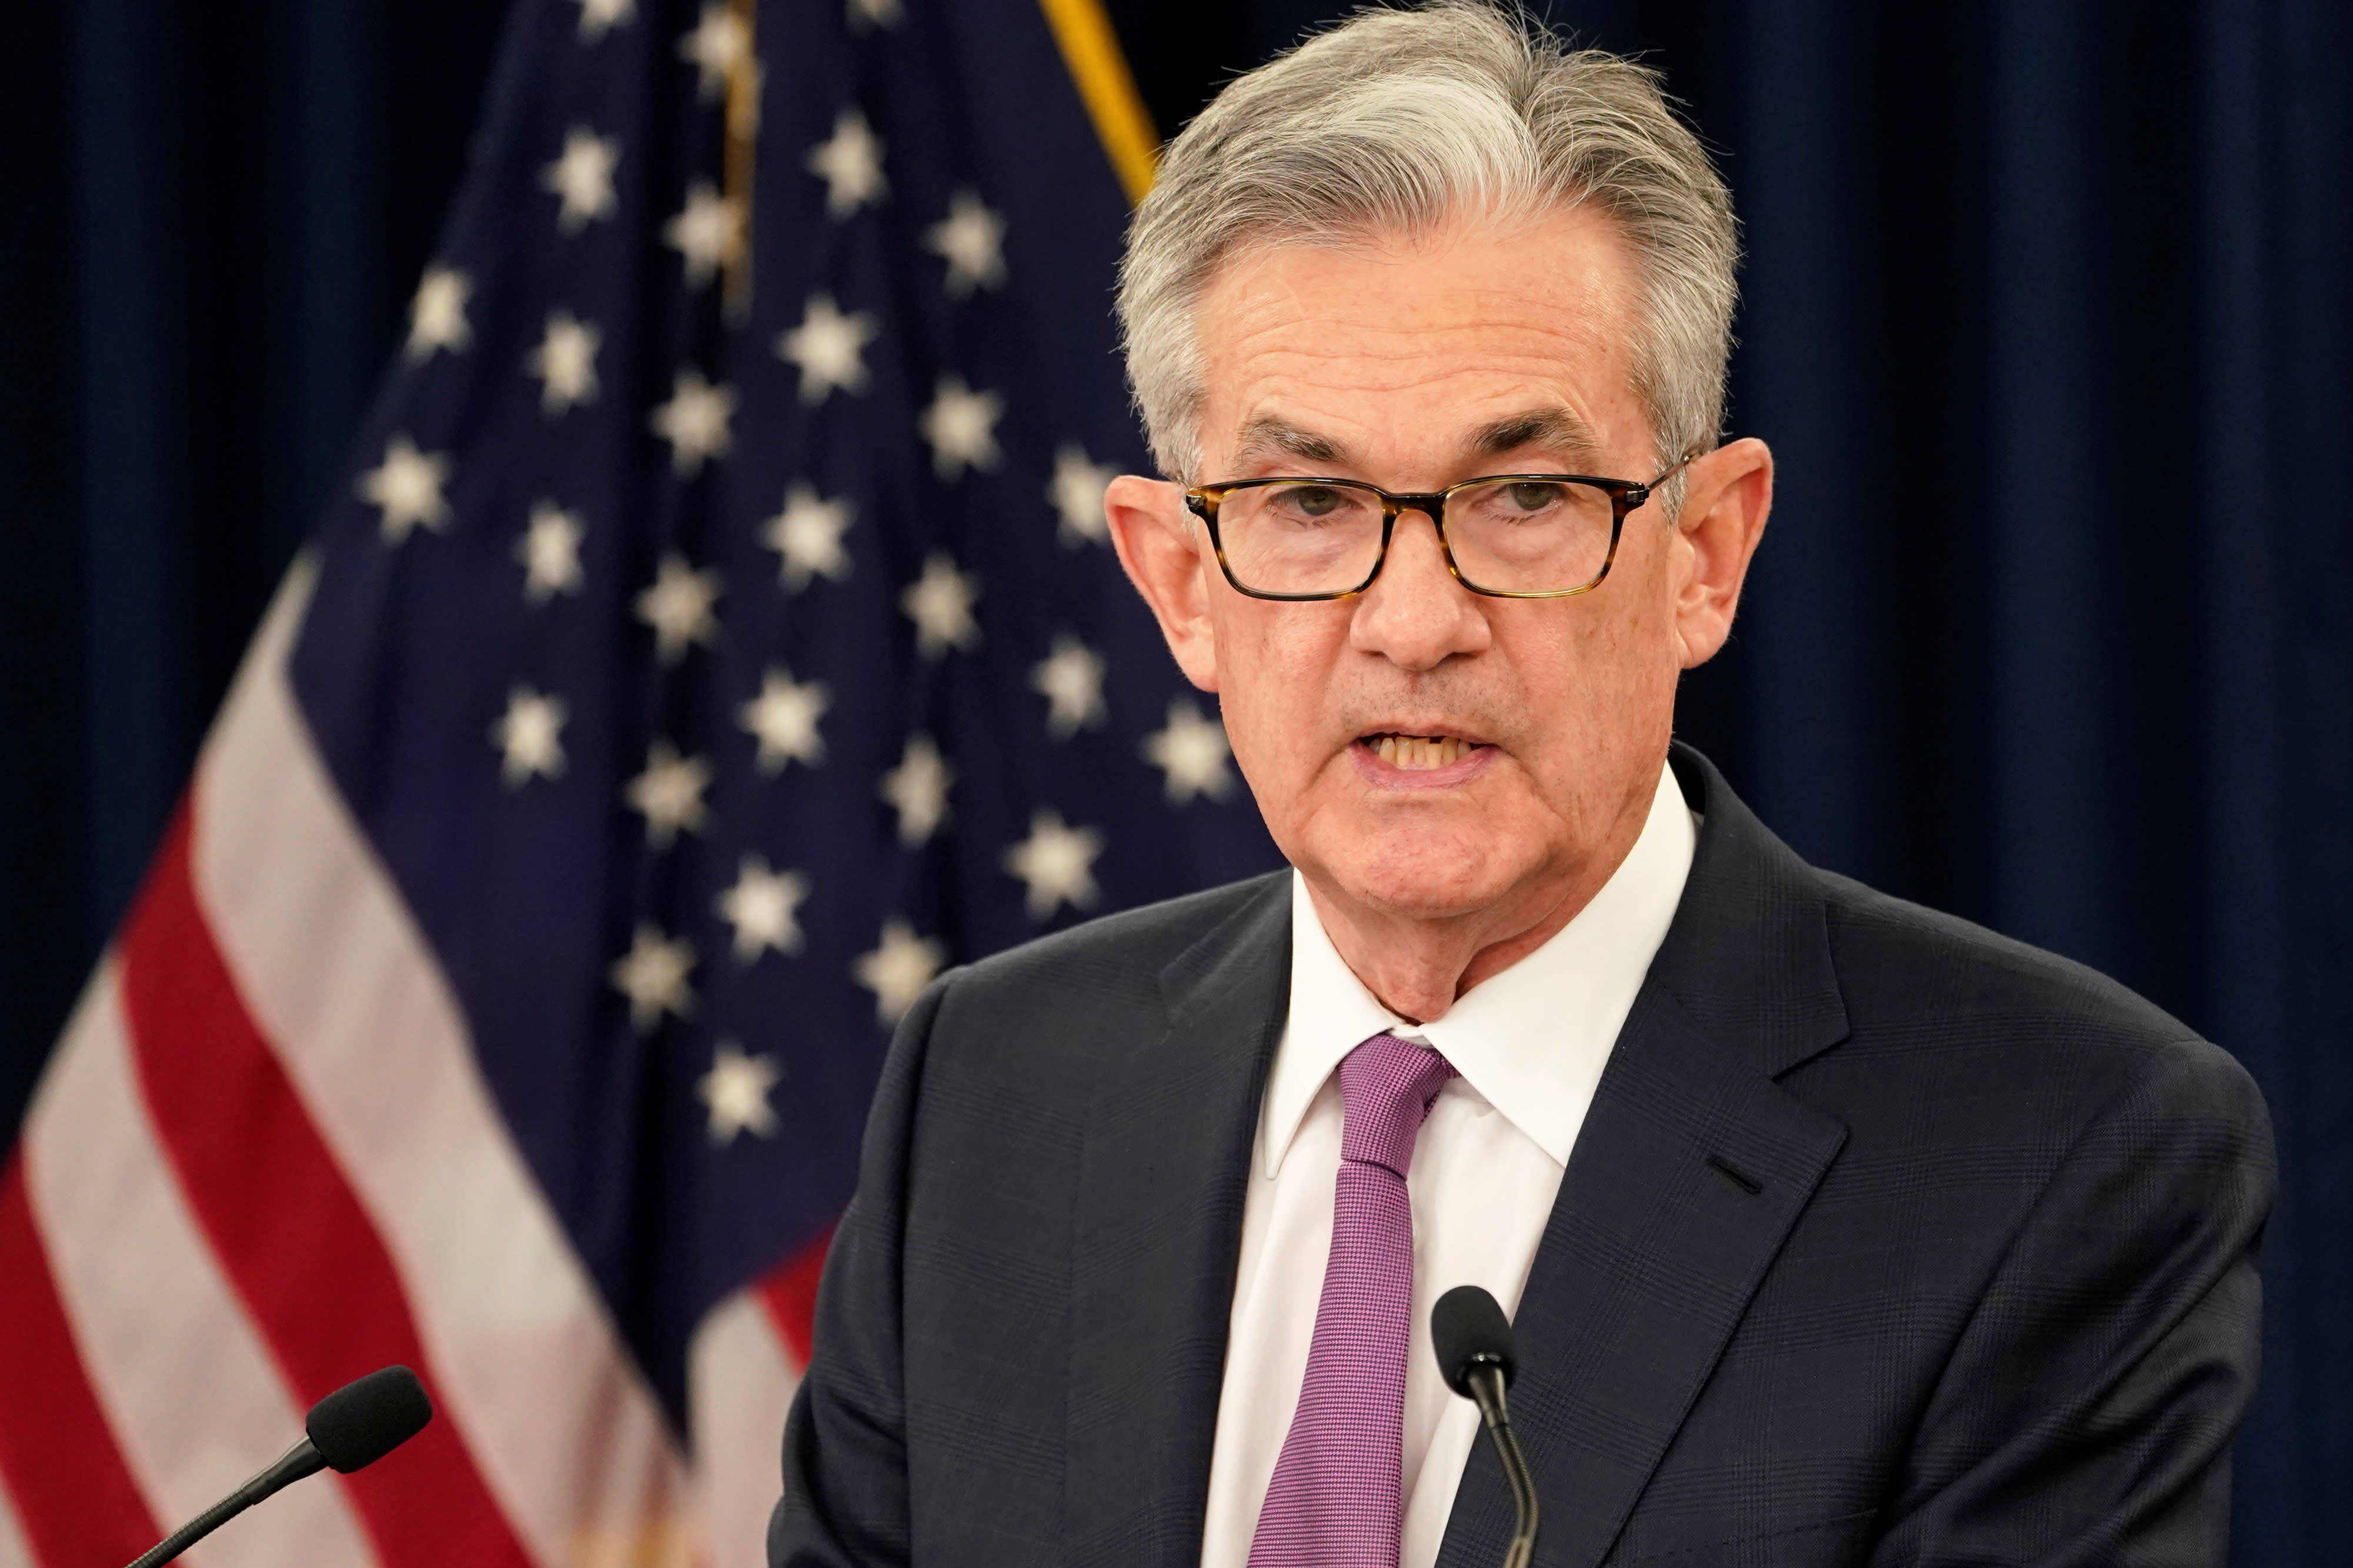 US futures point to higher open ahead of Powell's speech